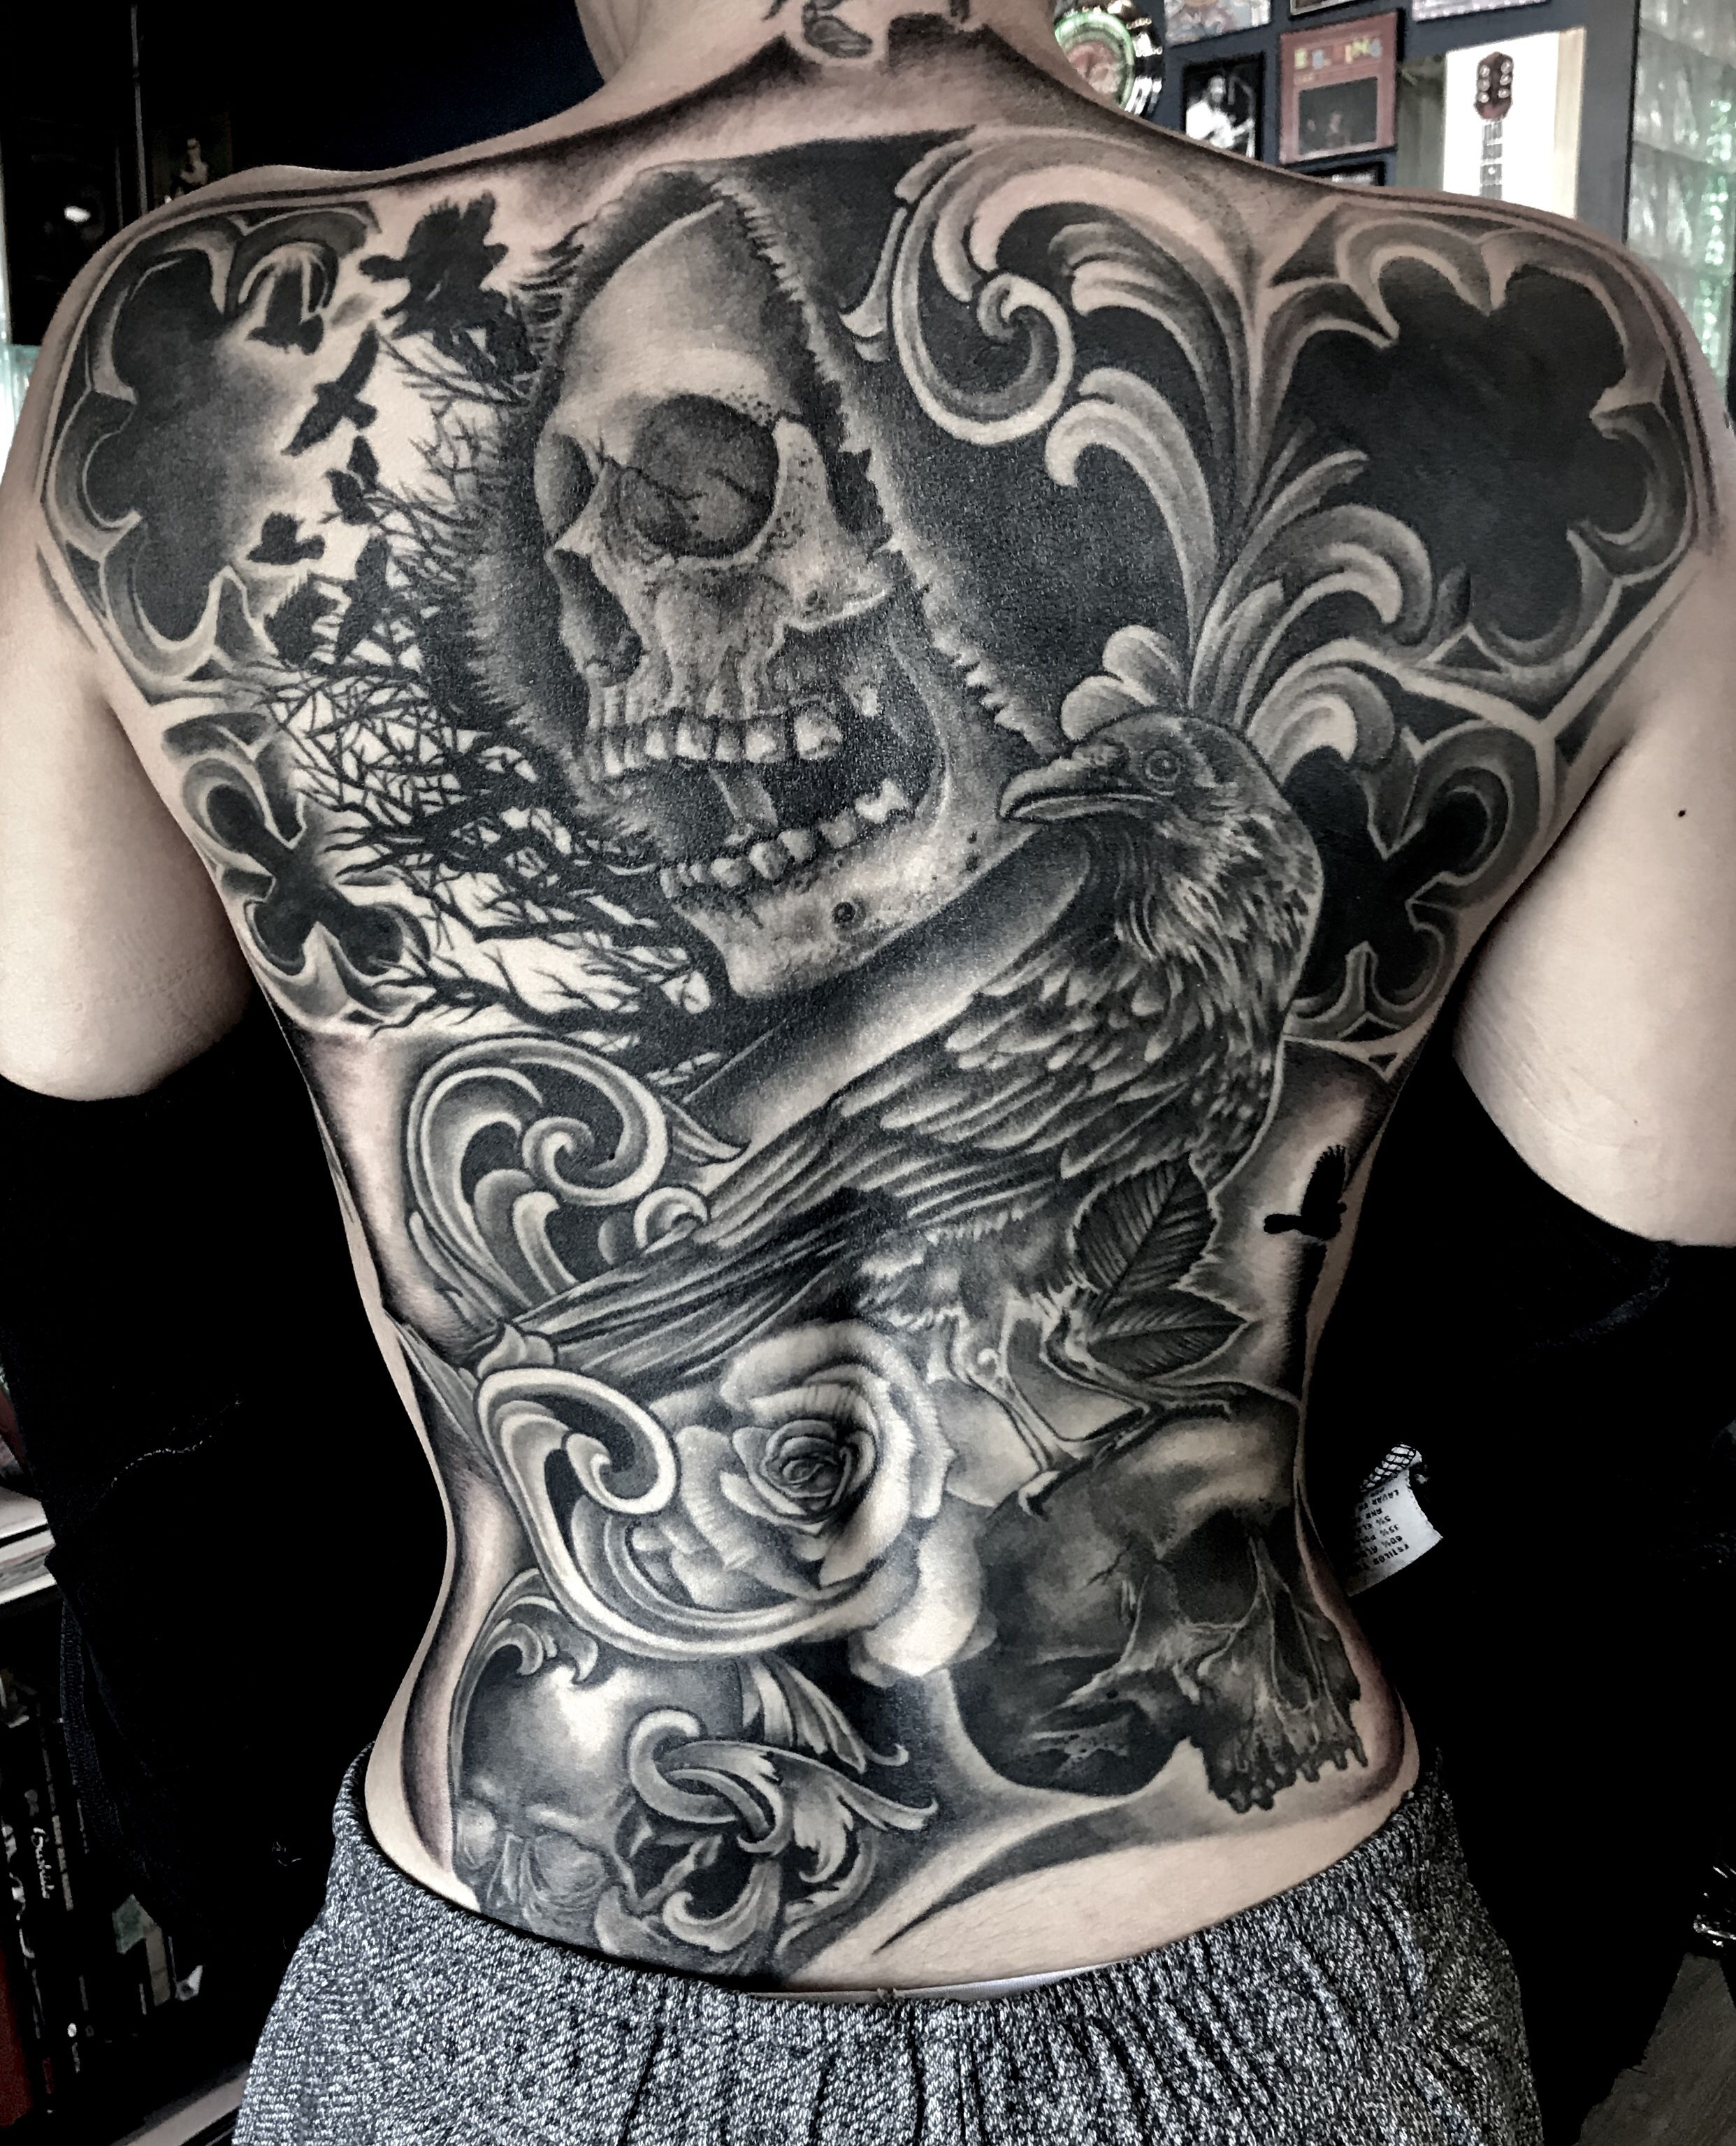 Full Back piece by Krystof at Bluenote Tattoo, skulls